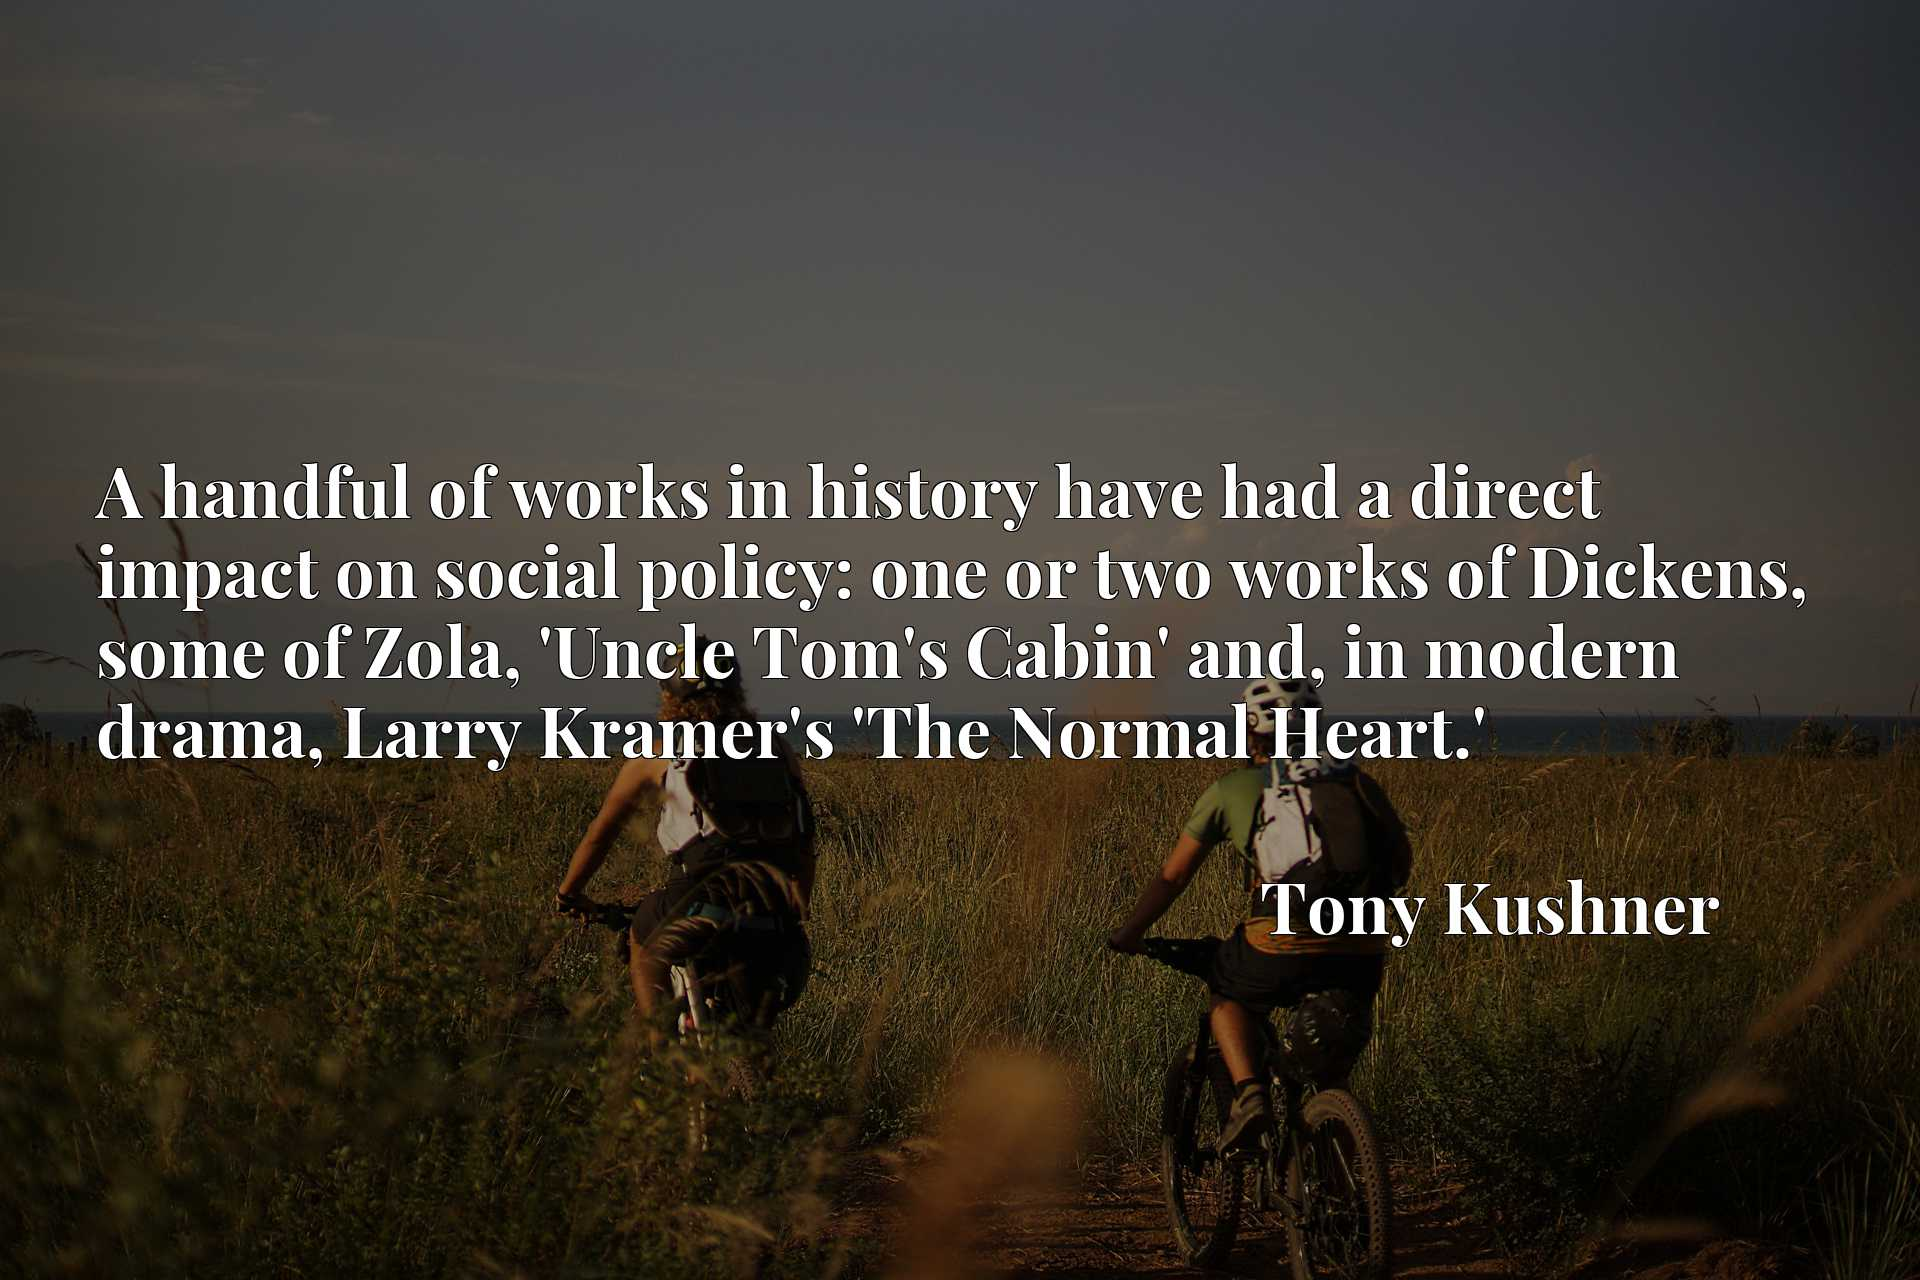 A handful of works in history have had a direct impact on social policy: one or two works of Dickens, some of Zola, 'Uncle Tom's Cabin' and, in modern drama, Larry Kramer's 'The Normal Heart.'